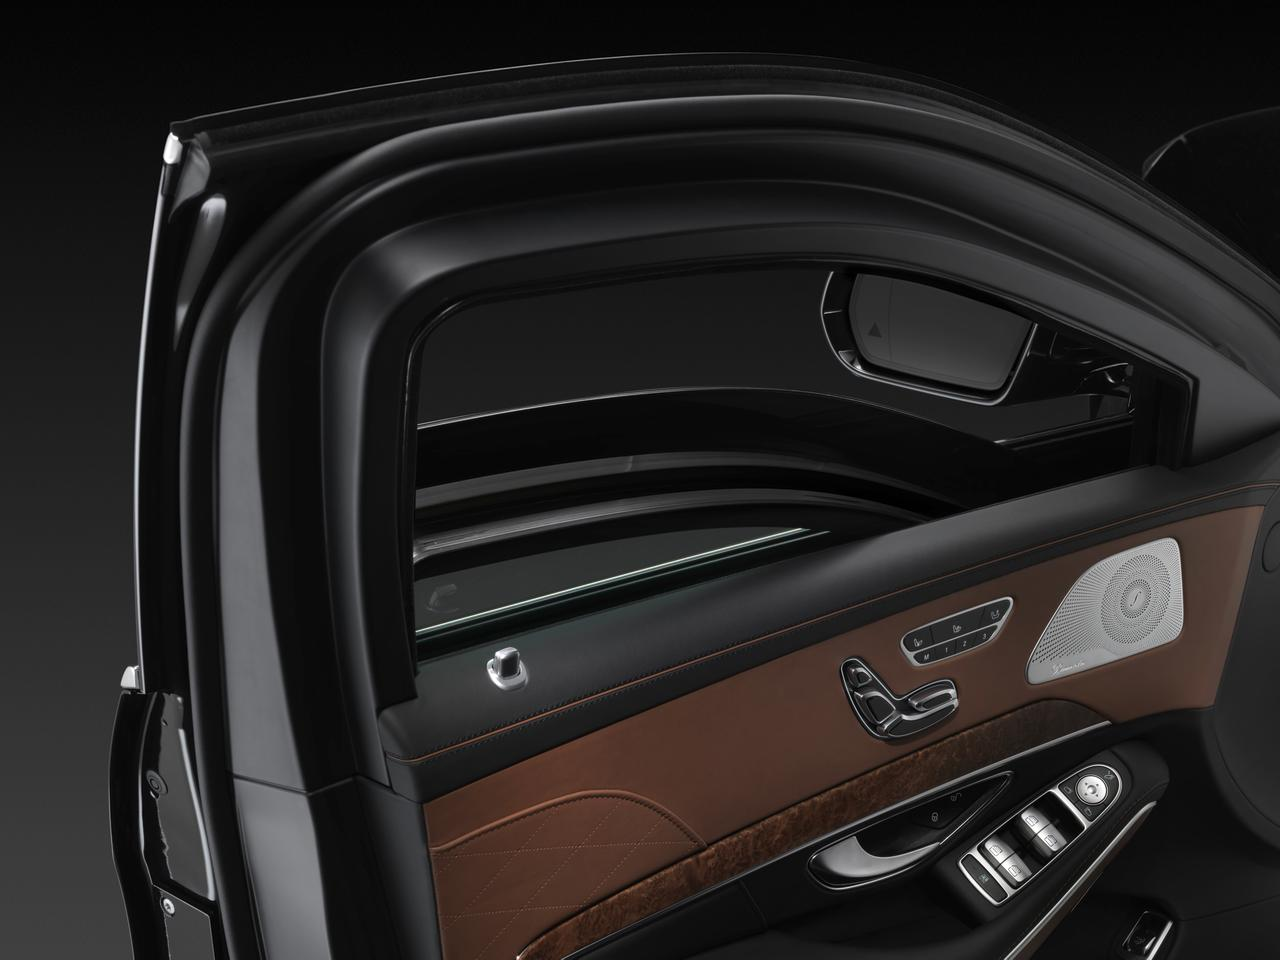 The Mercedes S-Class Guard is fitted with extra protection between the car's frame and bodywork